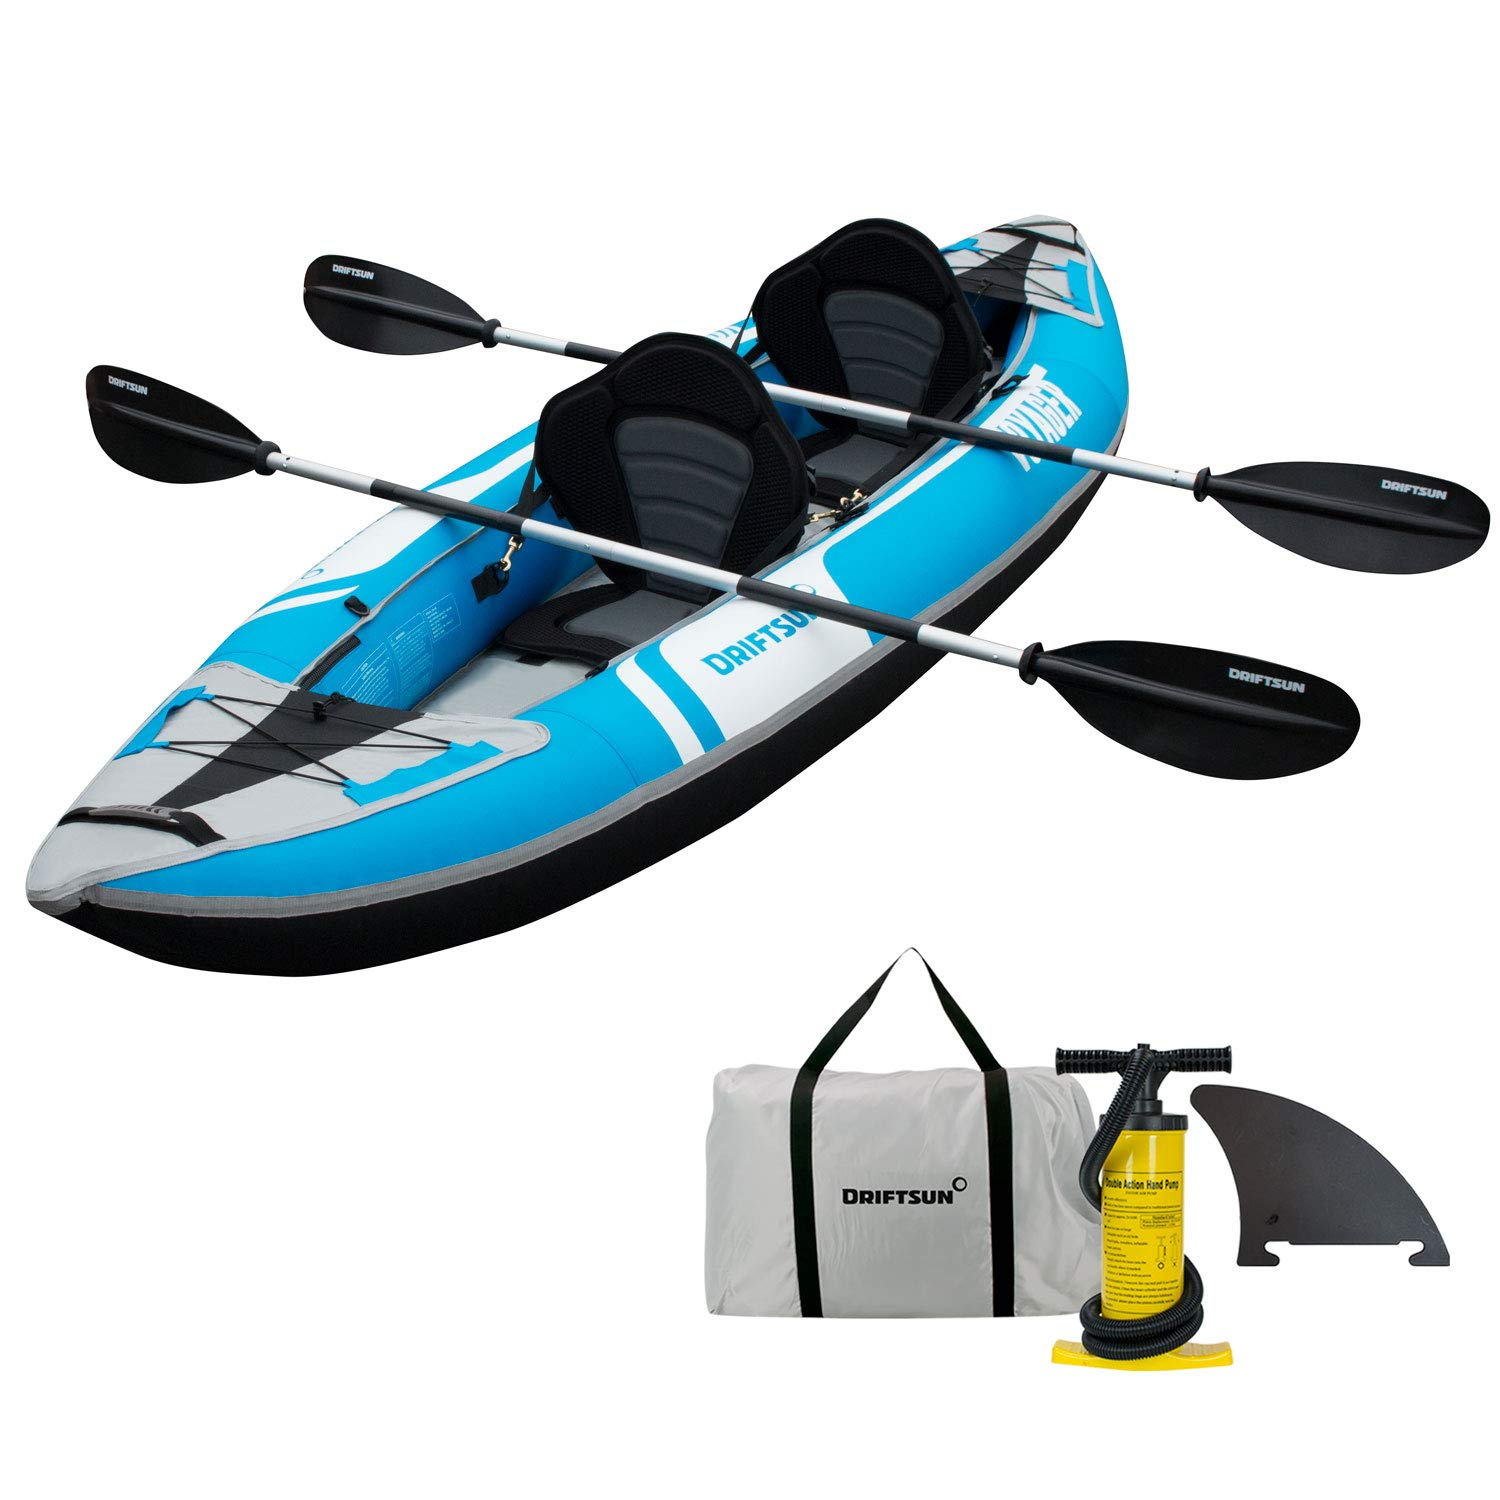 Driftsun Voyager 2 Person Tandem Inflatable Kayak, Includes 2 Aluminum Paddles, 2 Padded Seats, Double Action Pump and More by Driftsun